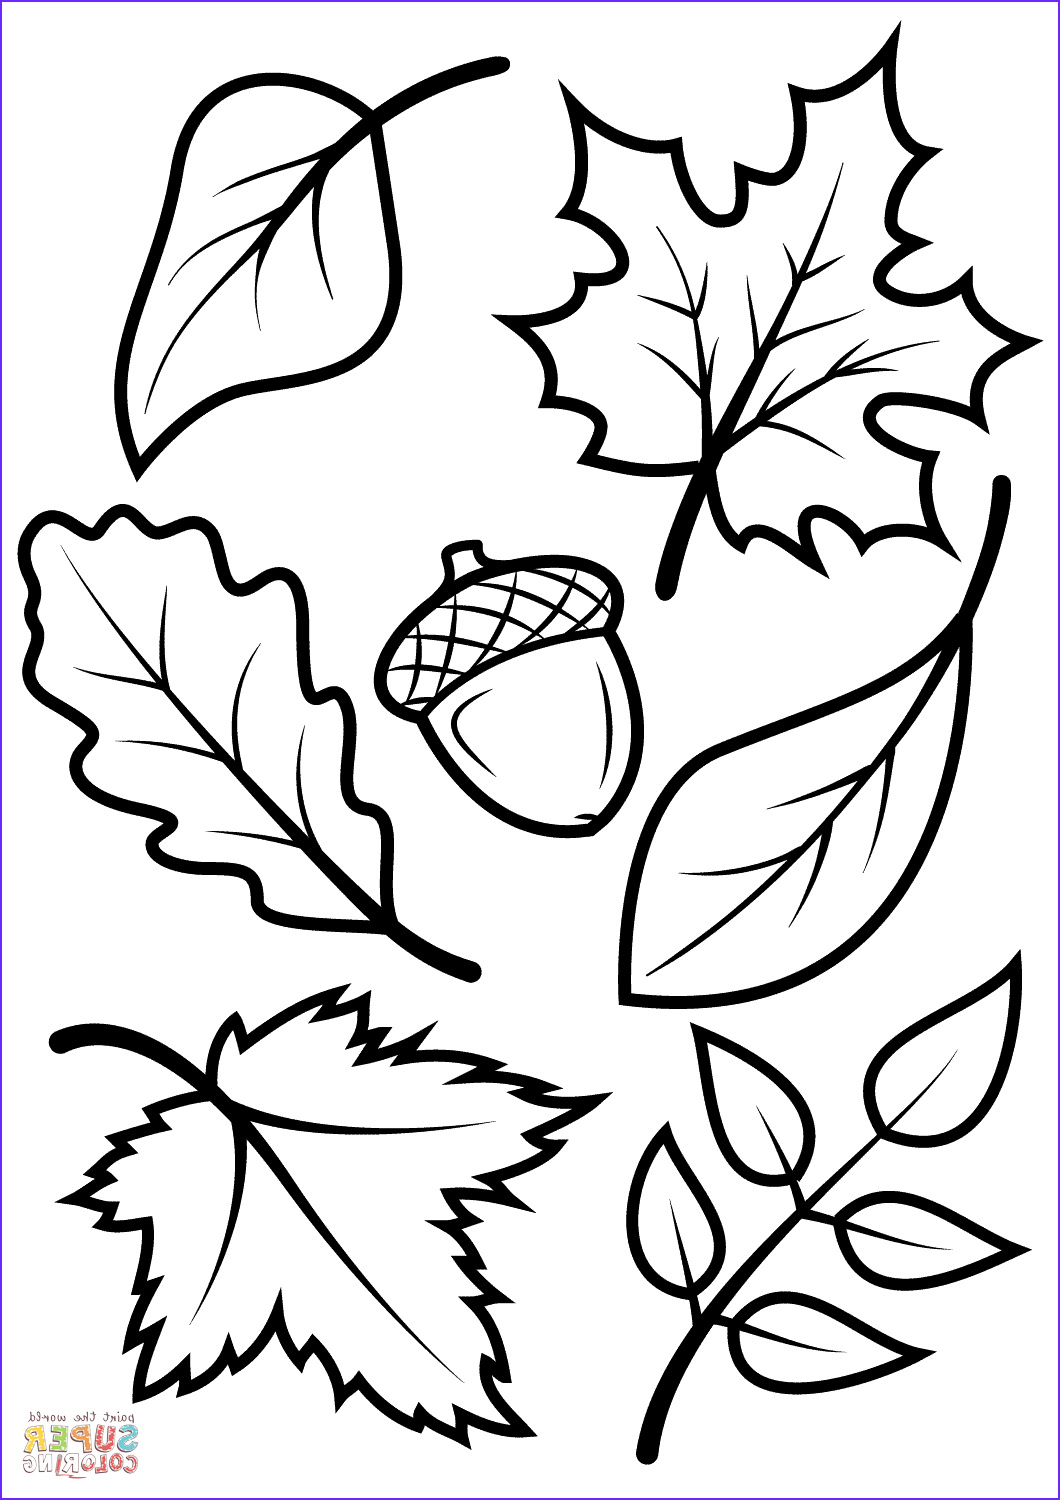 Autumn Coloring Sheets Best Of Image Fall Leaves and Acorn Coloring Page